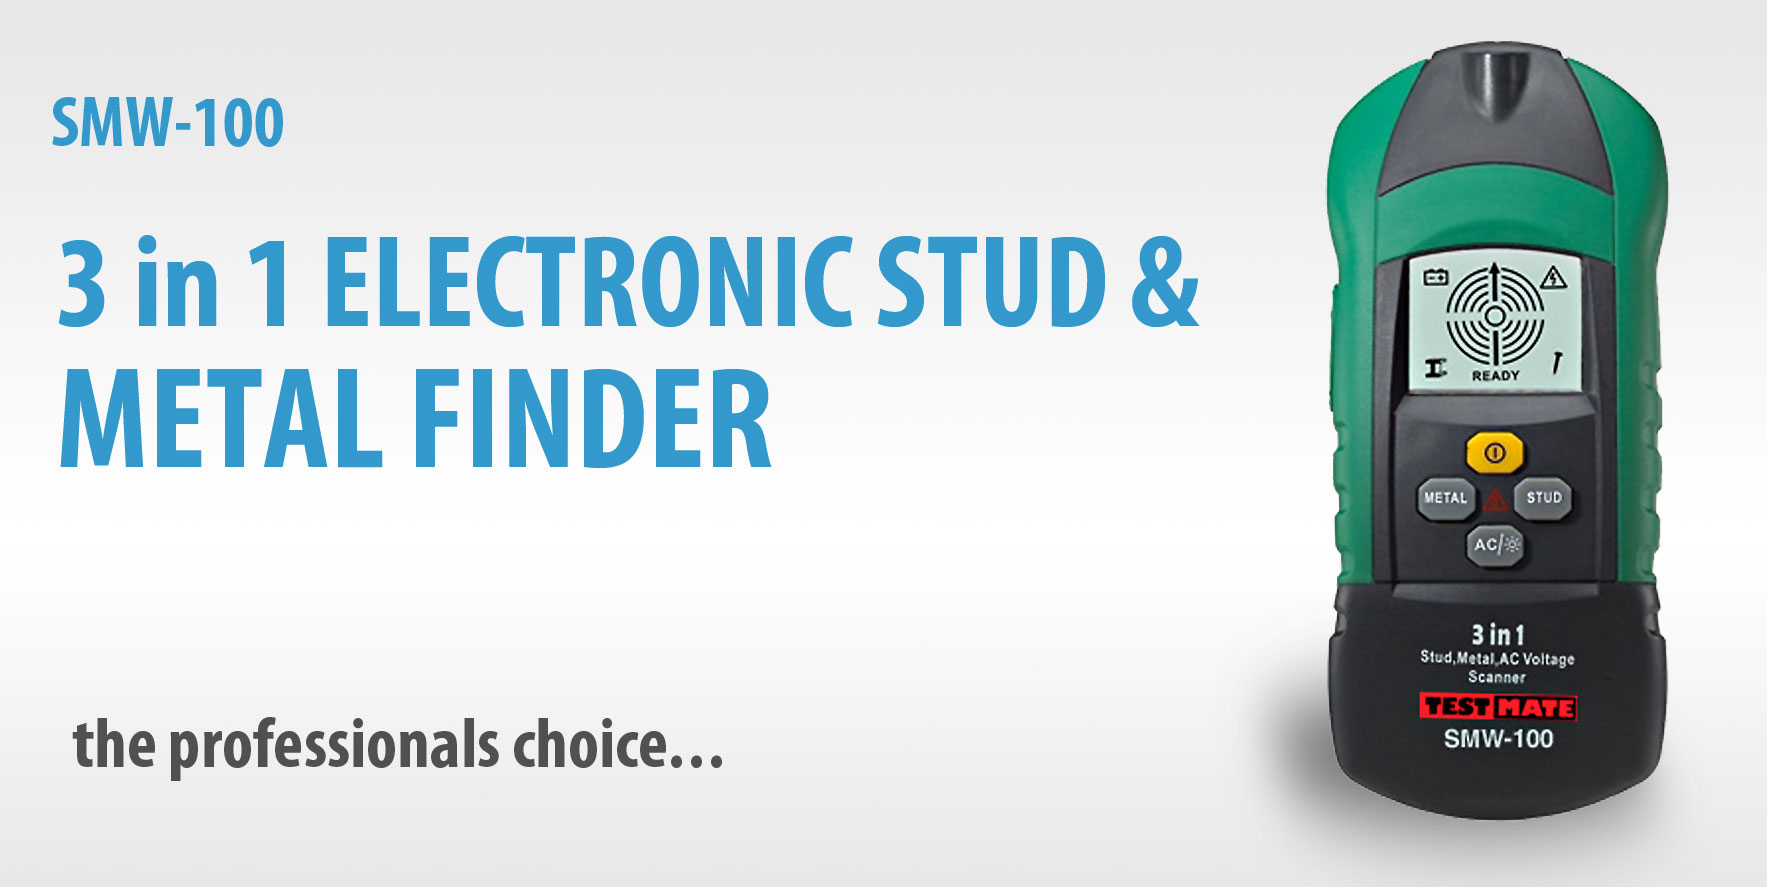 SMW-100 3 in 1 Electronic Stud & Metal Finder - Click to View